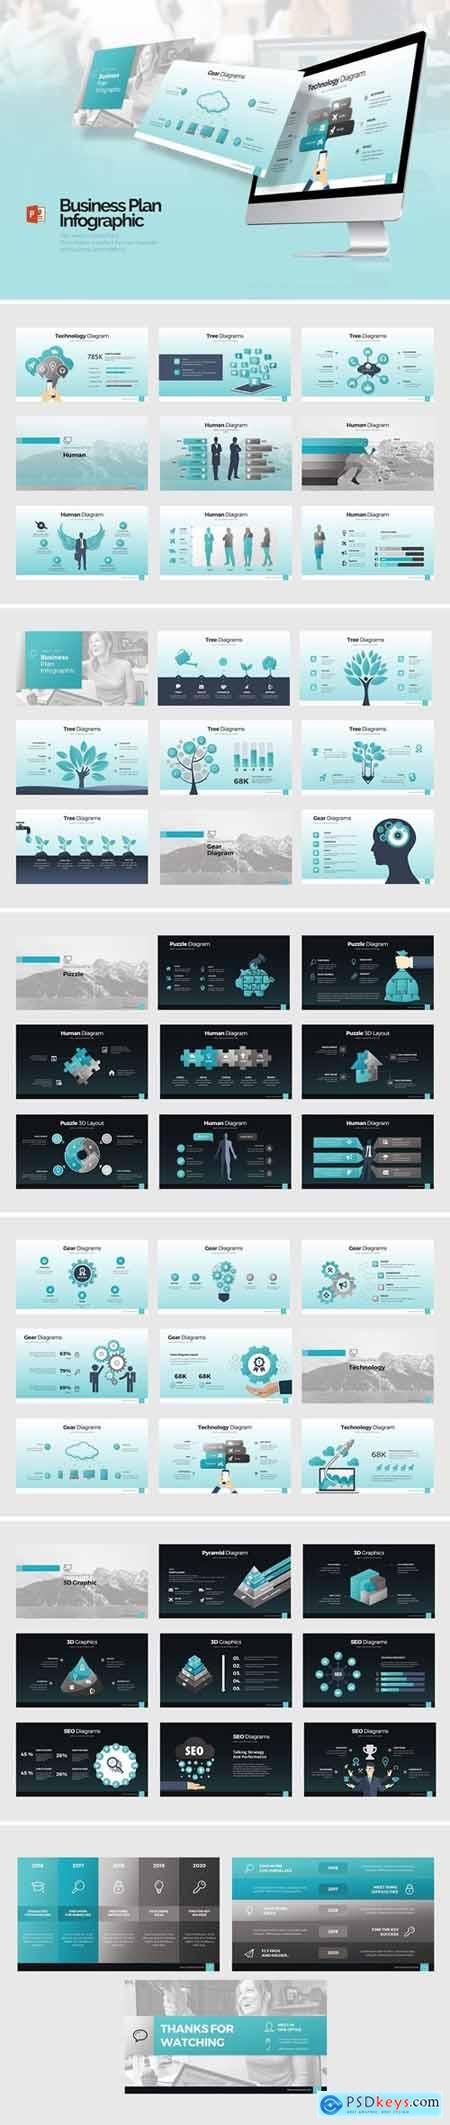 Business Plan Infographic Presentation Powerpoint and Keynote Template